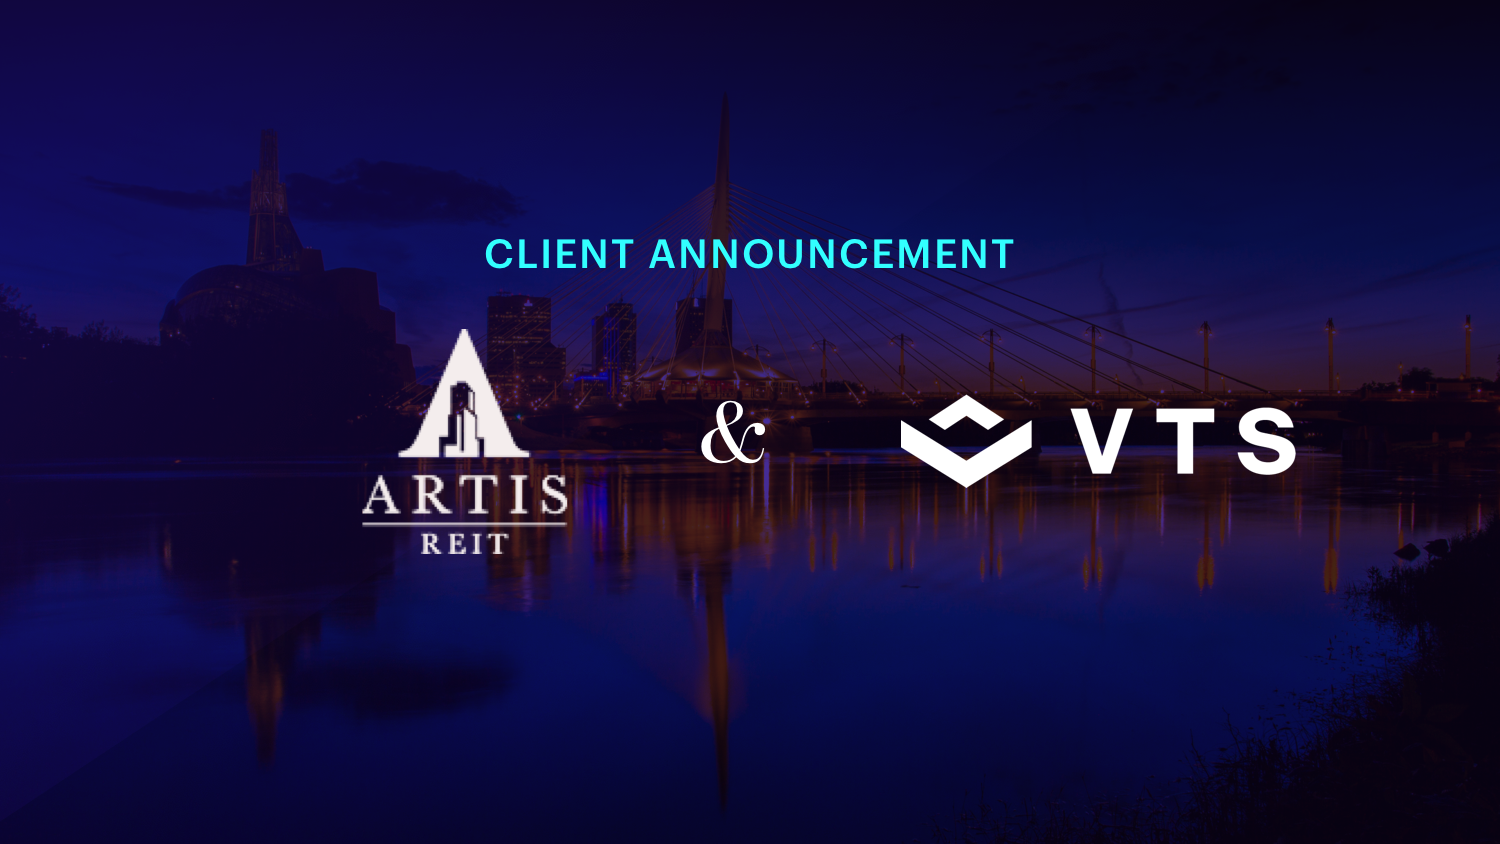 VTS Welcomes Artis REIT to leasing and asset Platform